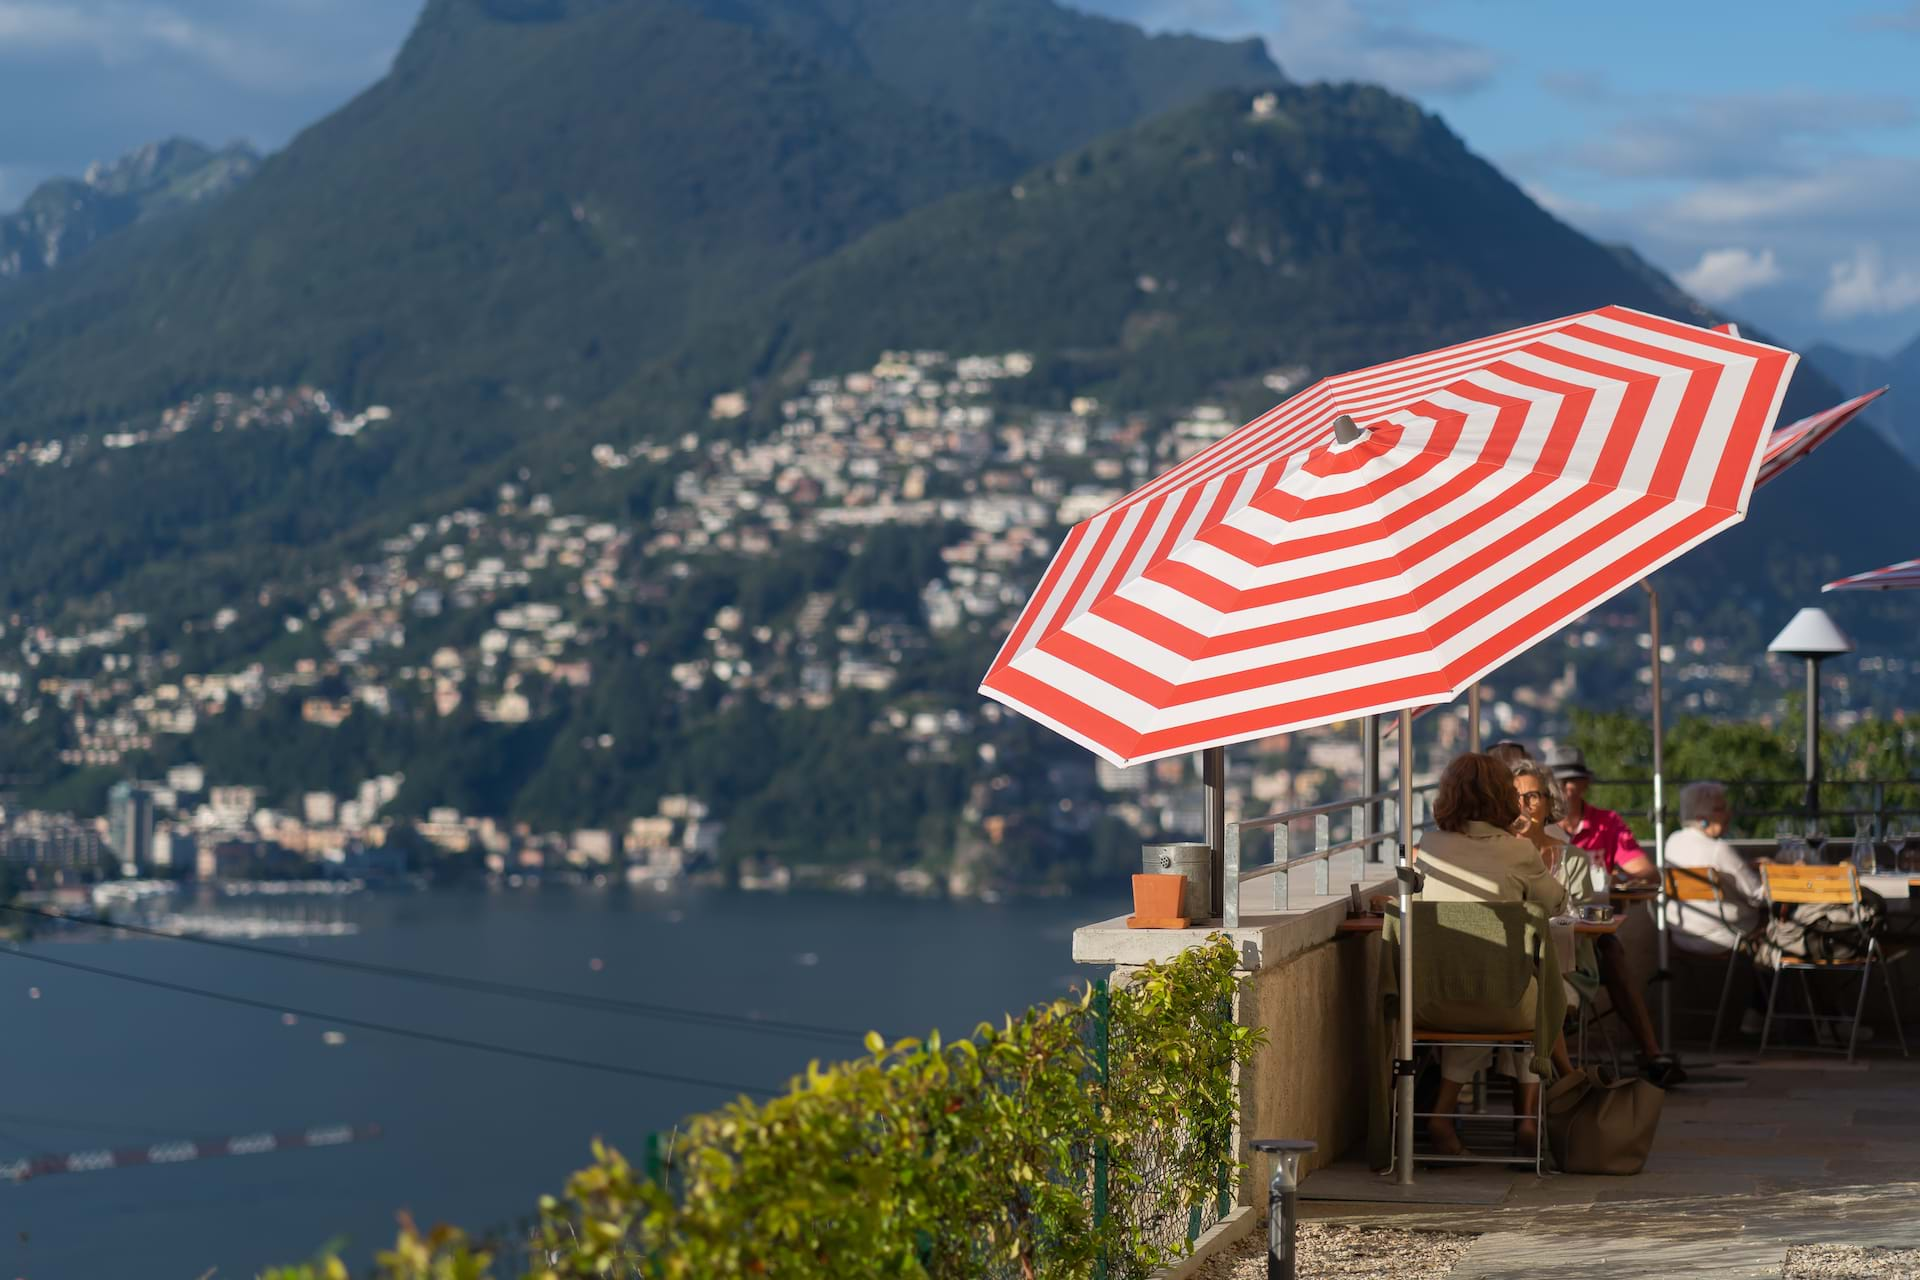 Hotel_Slideshow_Bigatt_Hotel_and_Restaurant_Lugano_13.jpg